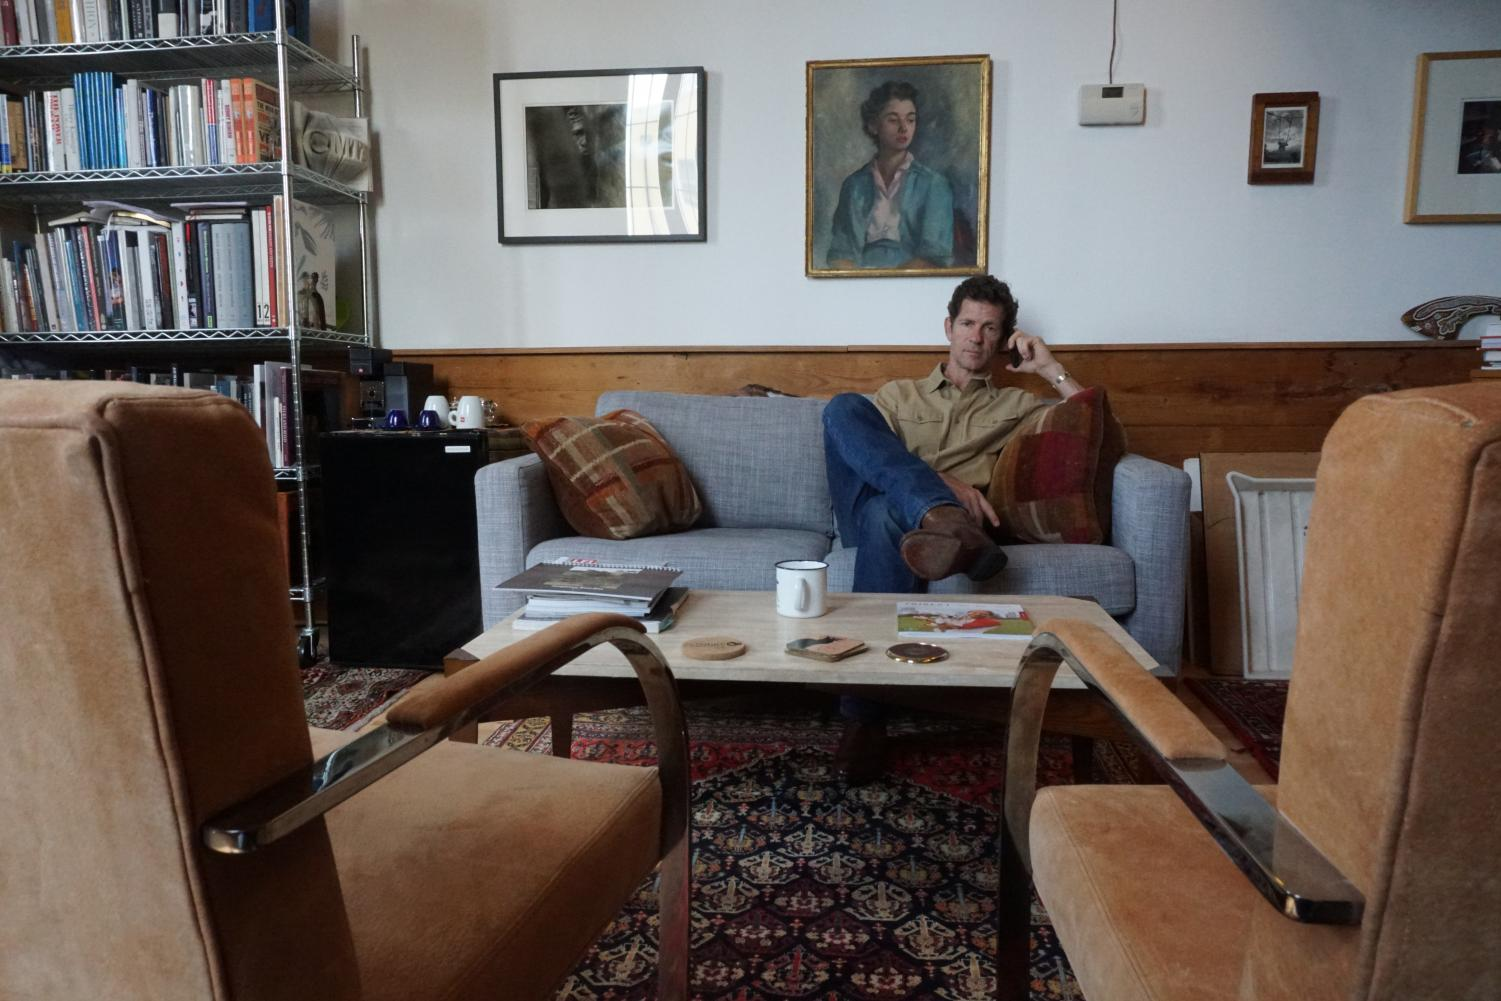 This project depicts my father at his place of work and shows the connection that he maintains with the rest of the family through phone and also through the photos and paintings of family members that line the walls of the office. Each of the photos depicting my father with pictures in the background include members of the family. The one of him at the window shows me and my brother, the one of him at his desk shows my mother in the background, and the one of him on the couch shows an older relative in the painting. I feel the strongest of these pictures is the one of him on the couch with the chairs in the foreground. This one has the strongest composition and makes the best use of the space in his office to create a compelling image, it also features the painting of the woman who is a family member hanging right above his head. Photo by Jordan Langmore. Selected for Work+Family archive.